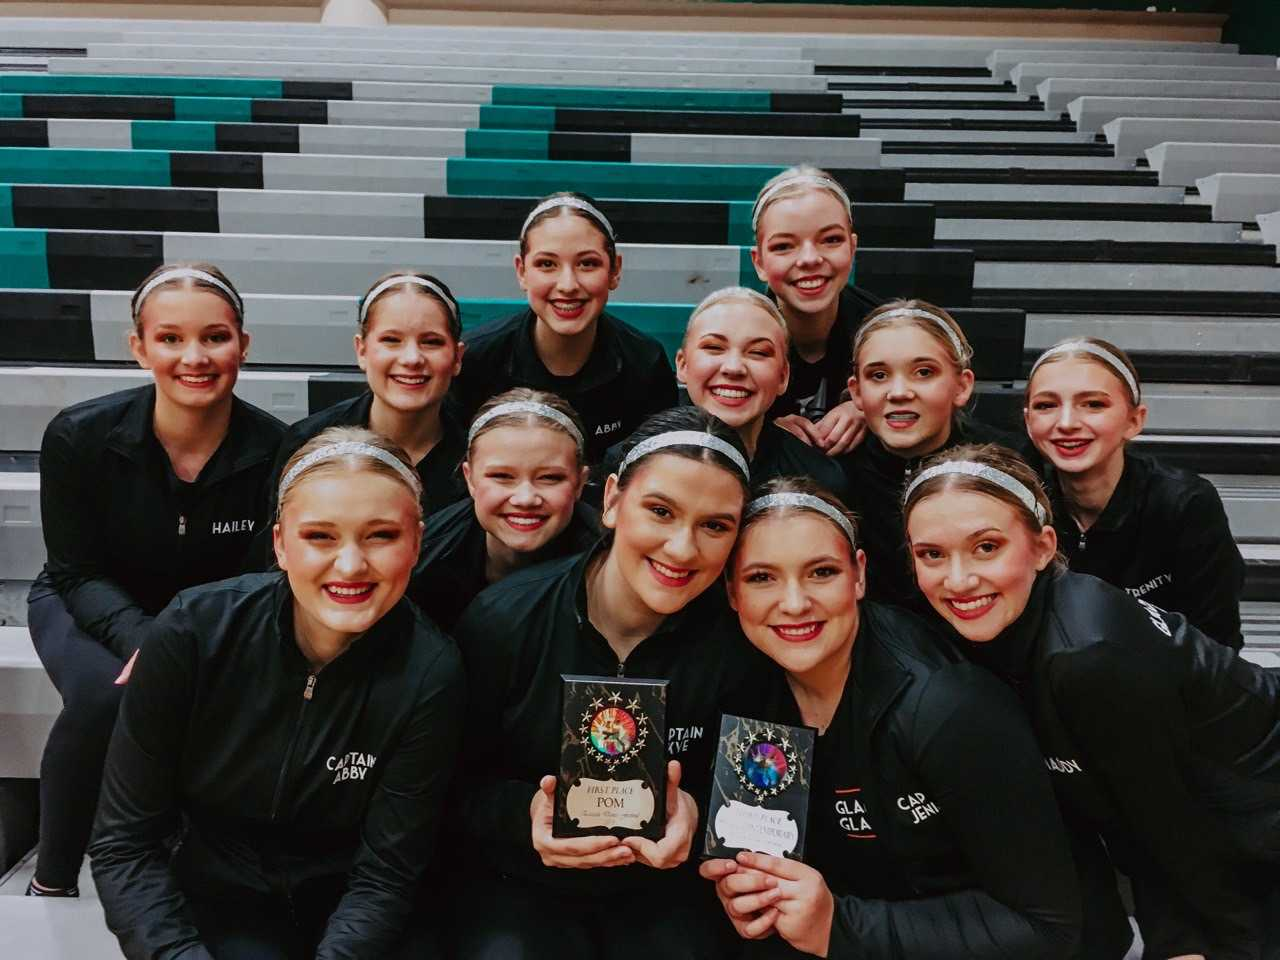 The Gladstone Gladettes finished first in Pom, second in Small Jazz, and thir in Small Contemporary at the Reynolds Competition.